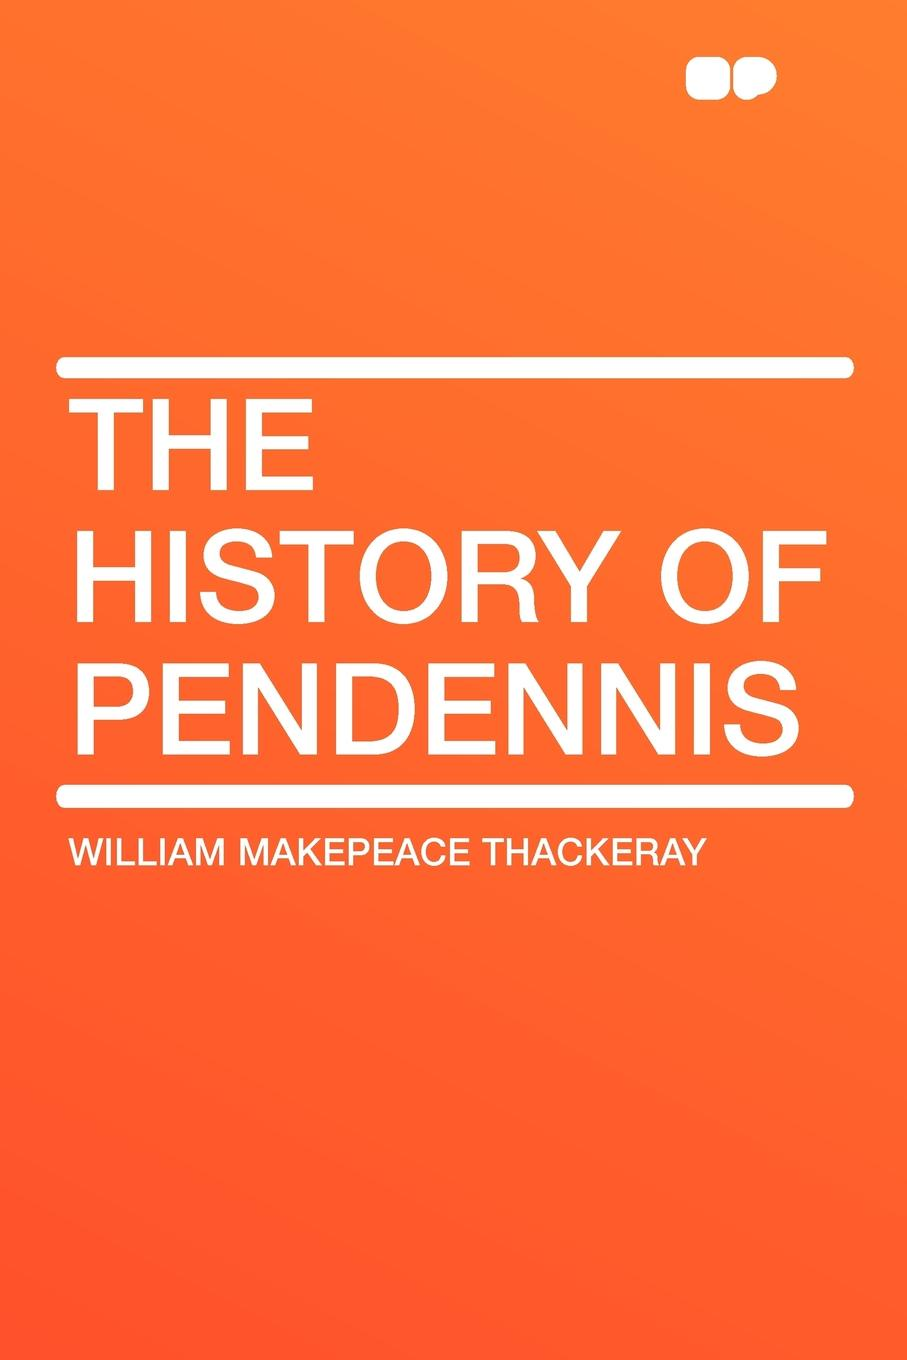 William Makepeace Thackeray The History of Pendennis thackeray william makepeace the history of pendennis 1